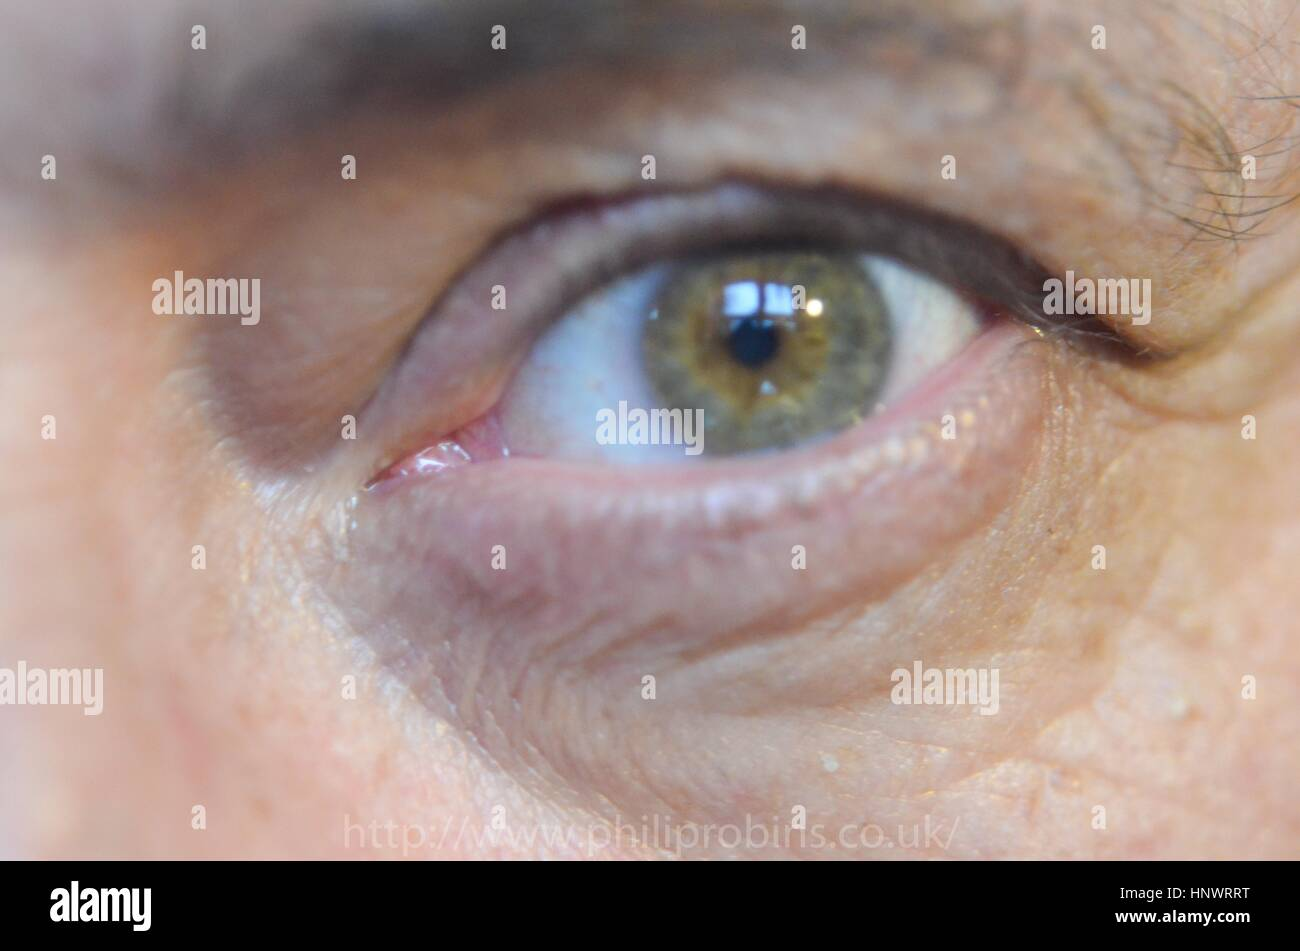 Middle aged eyes , man topical anatomy Stock Photo: 133947852 - Alamy